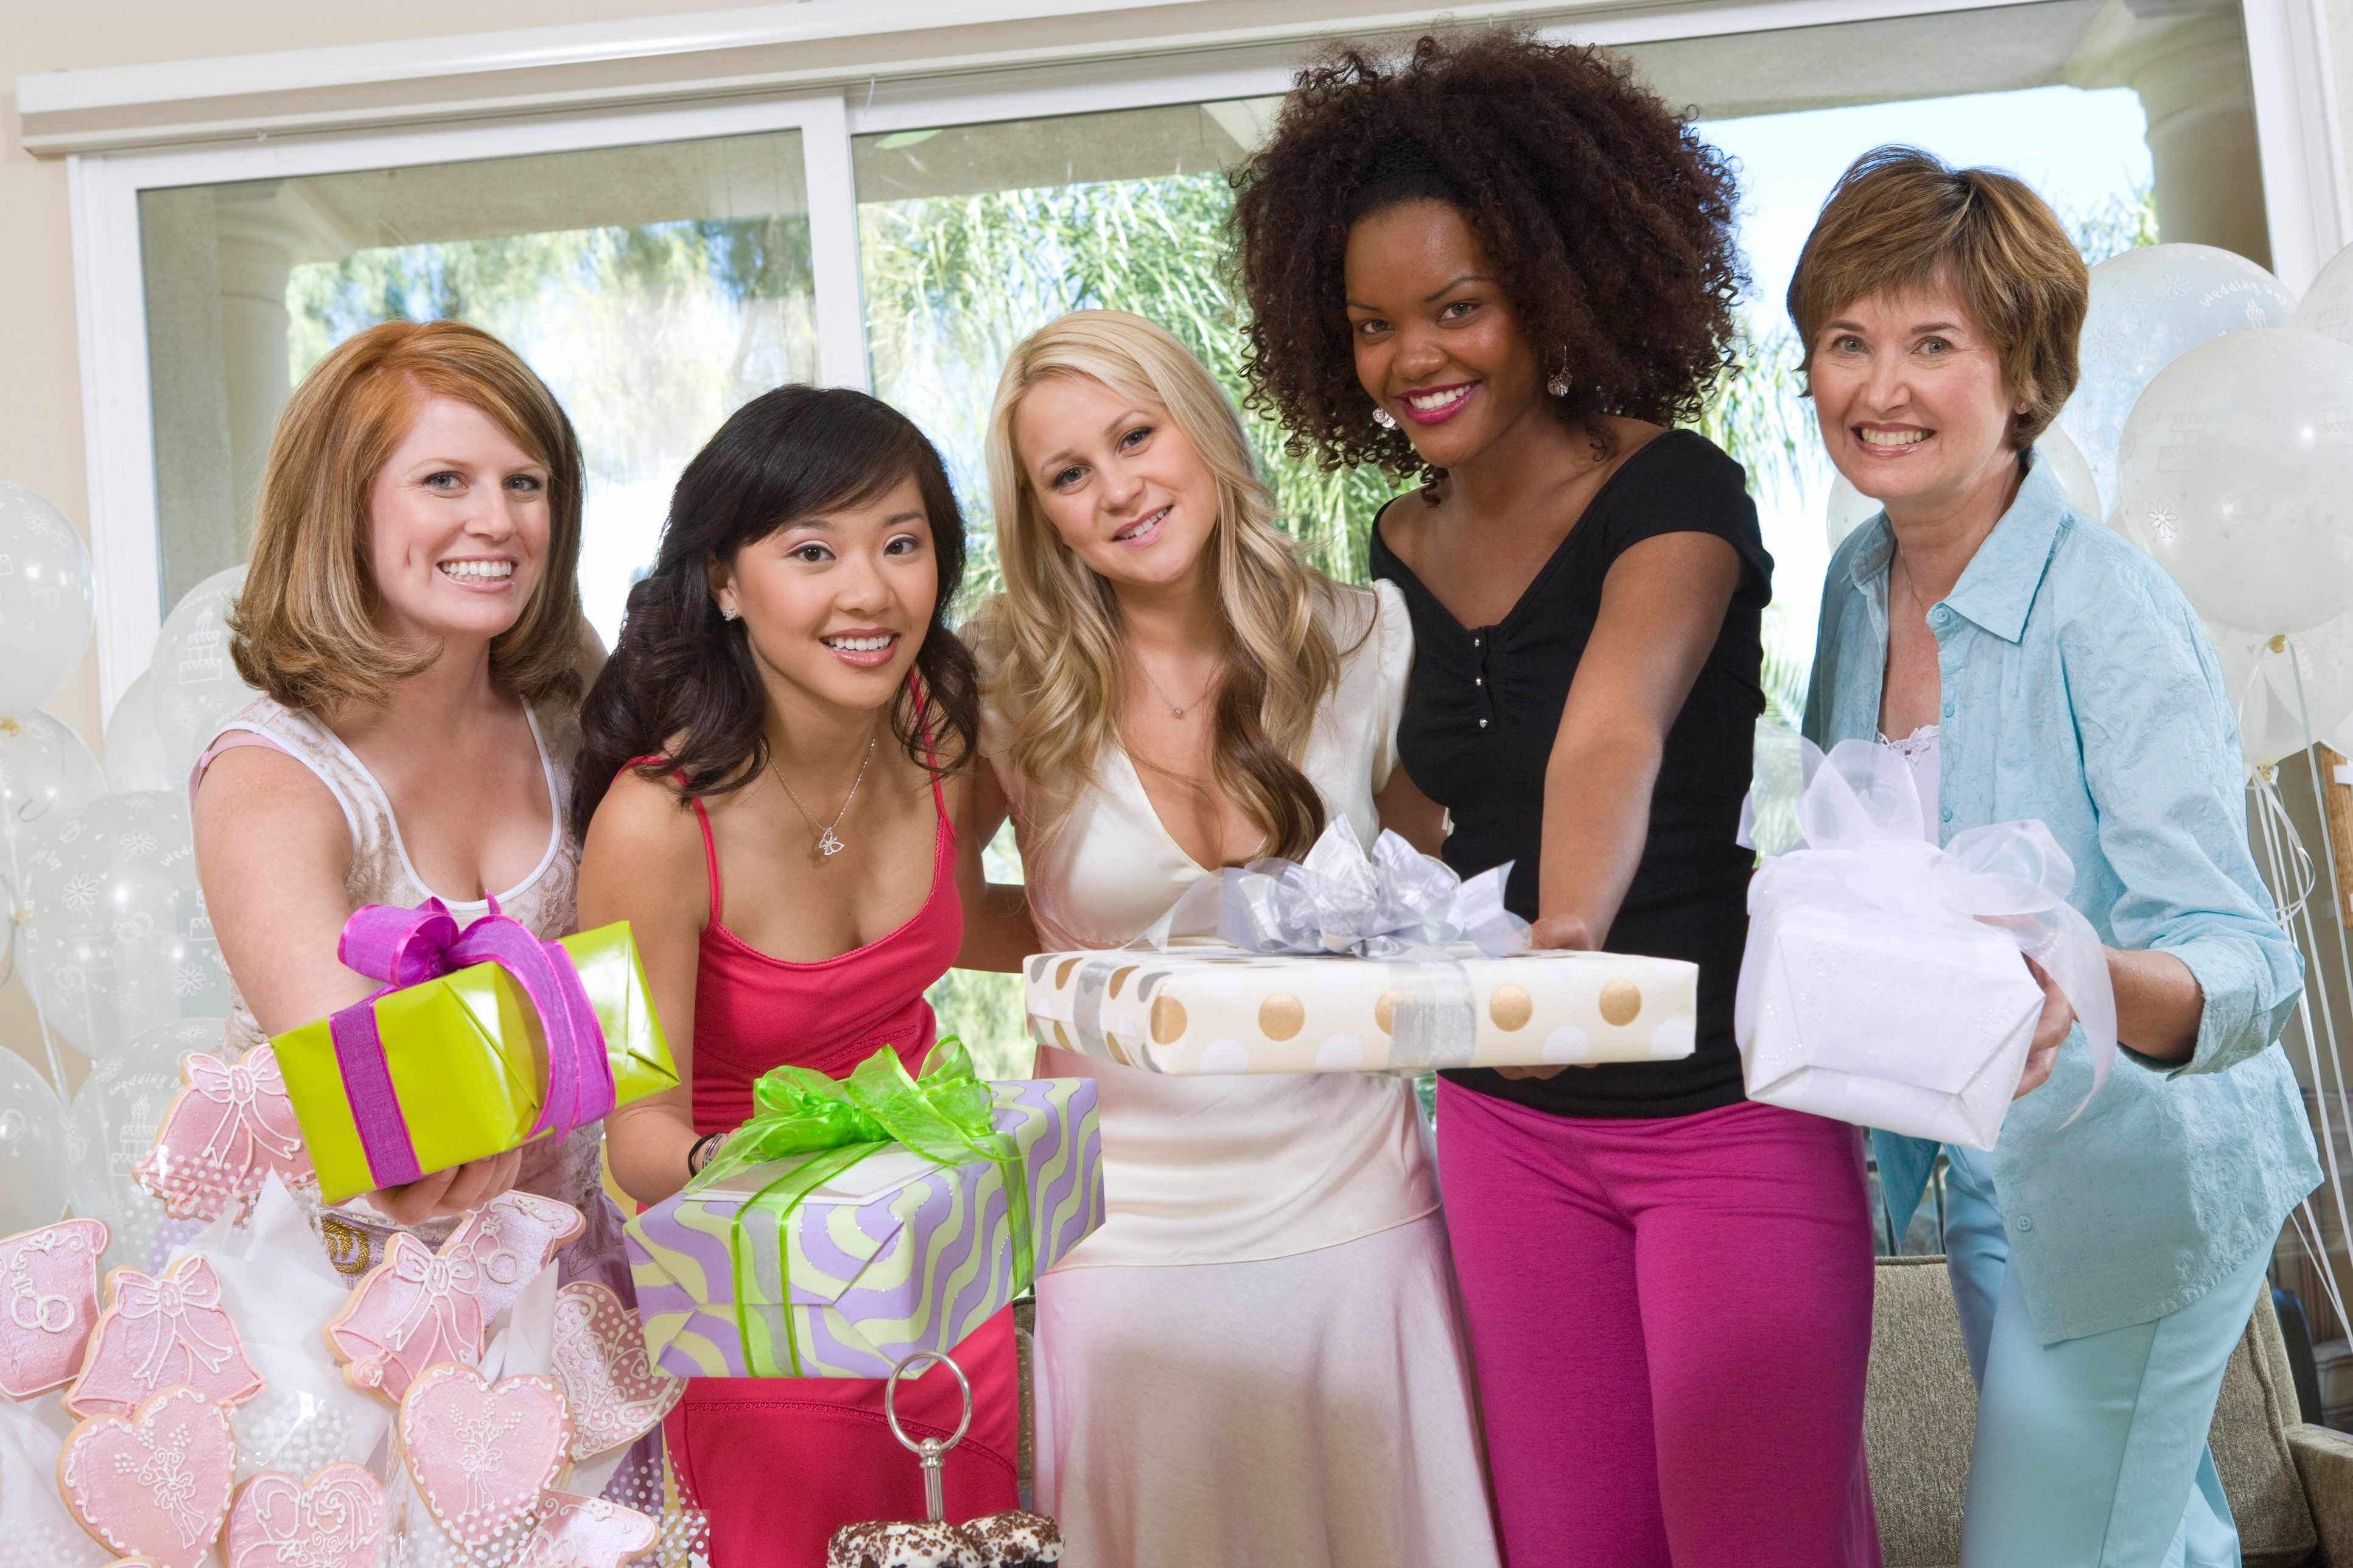 I'm A Bridesmaid. How Much Should I Spend On Wedding Gifts? | HuffPost